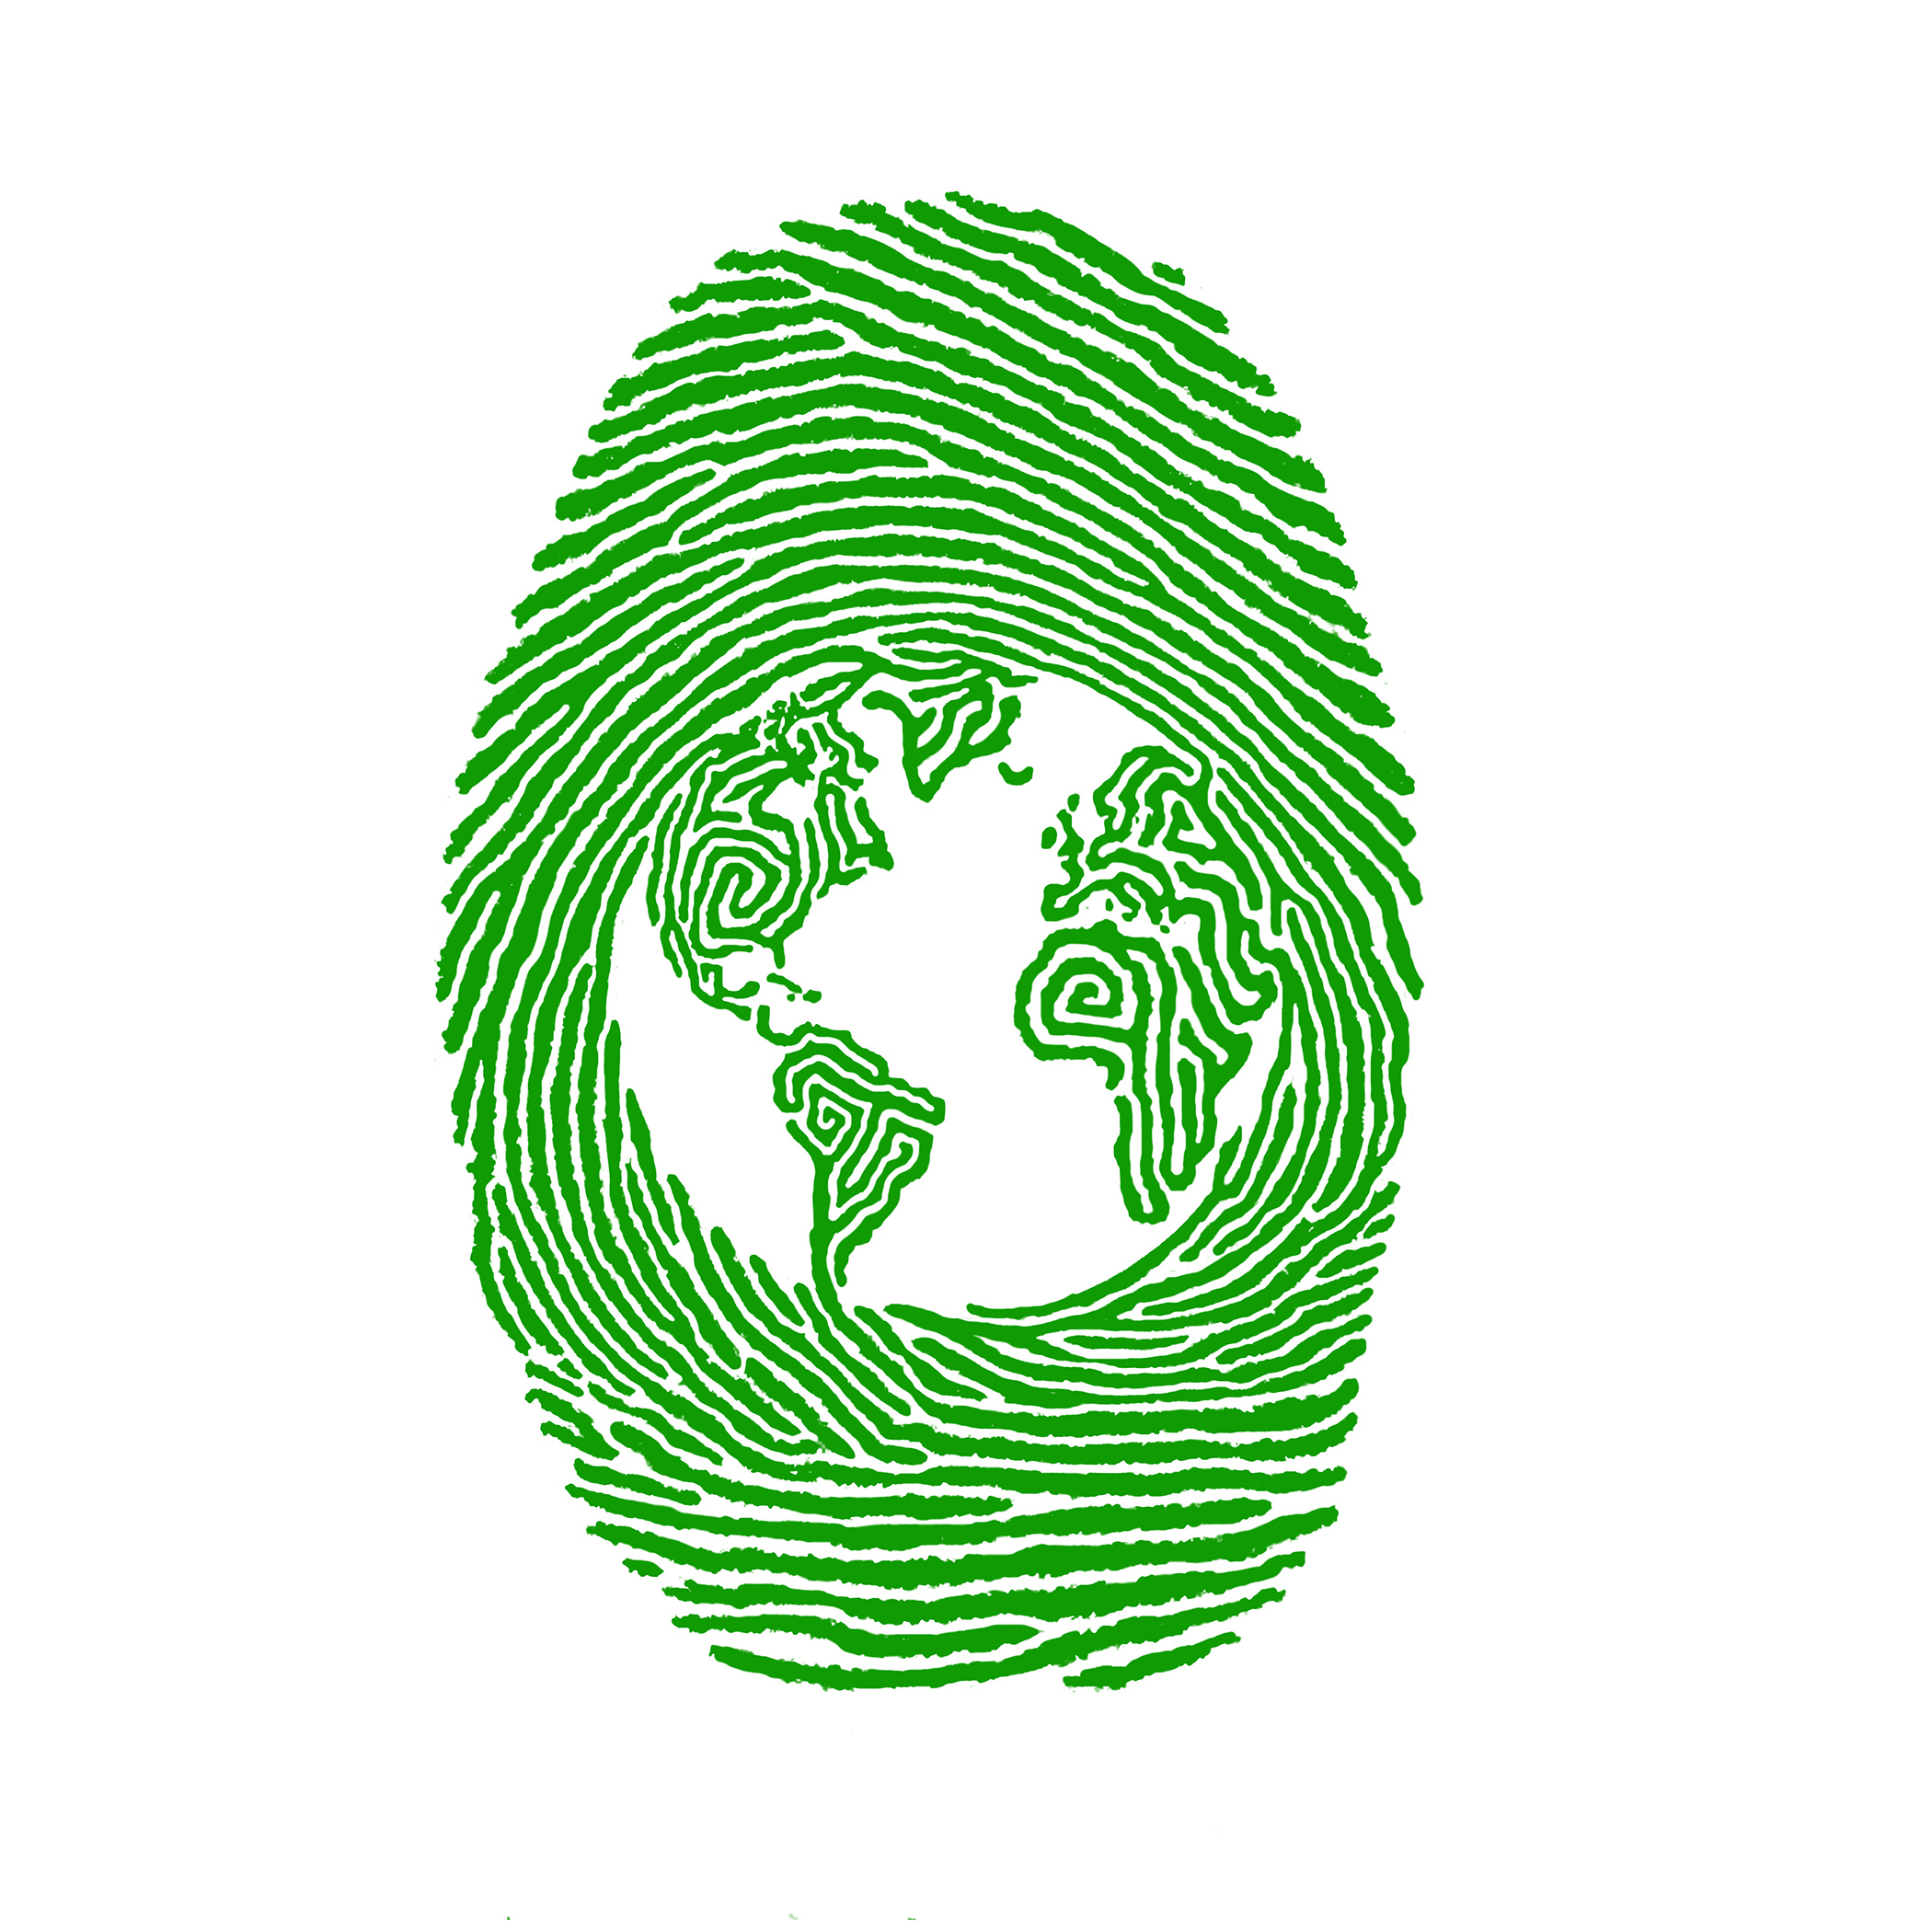 Green Thumbprint